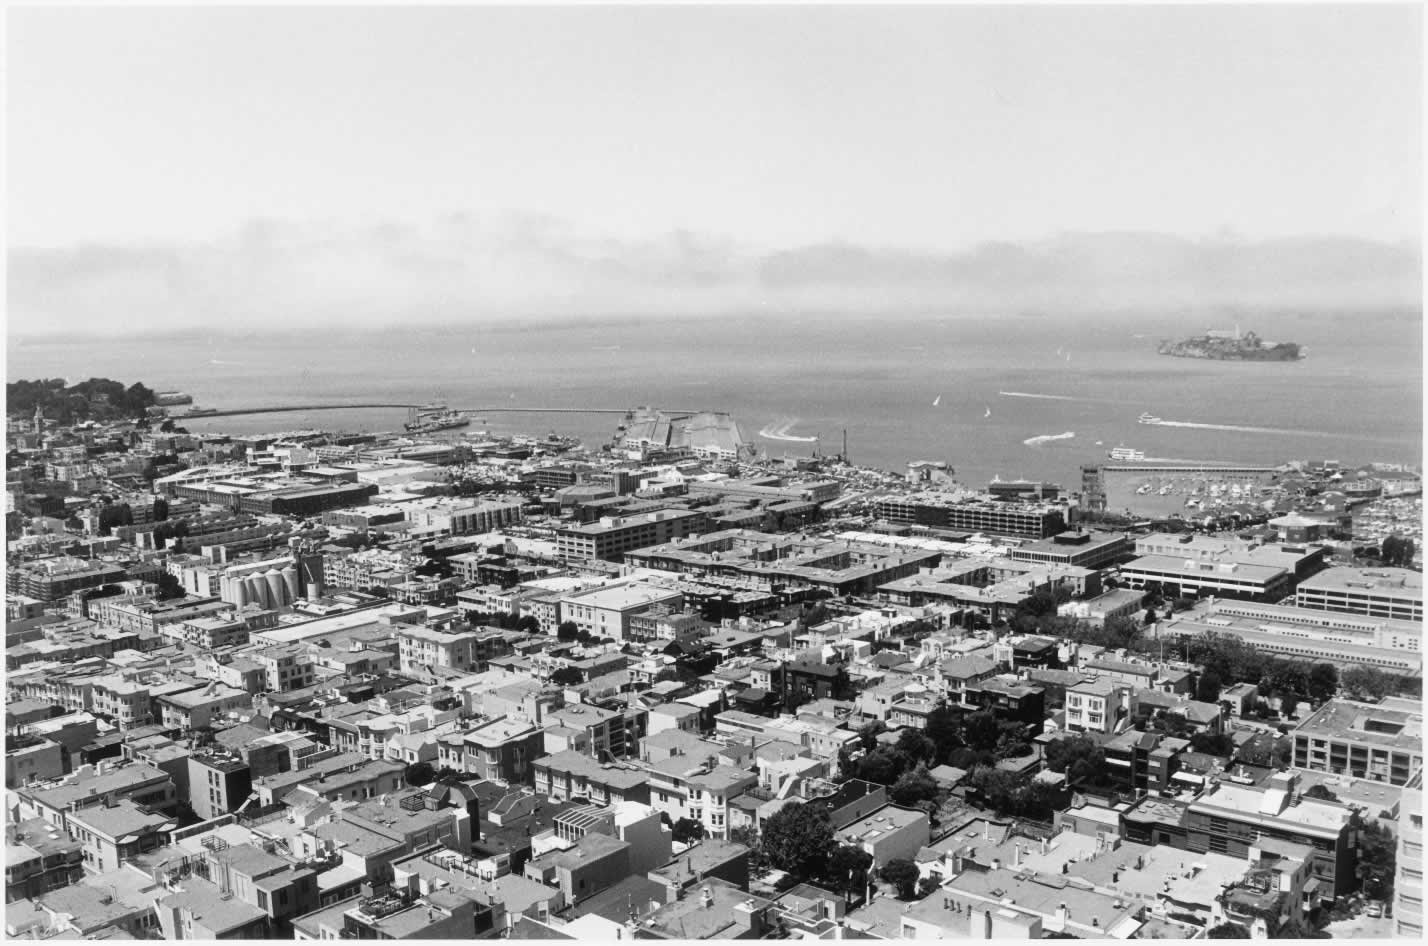 San Francisco at the beginning of the 21st century